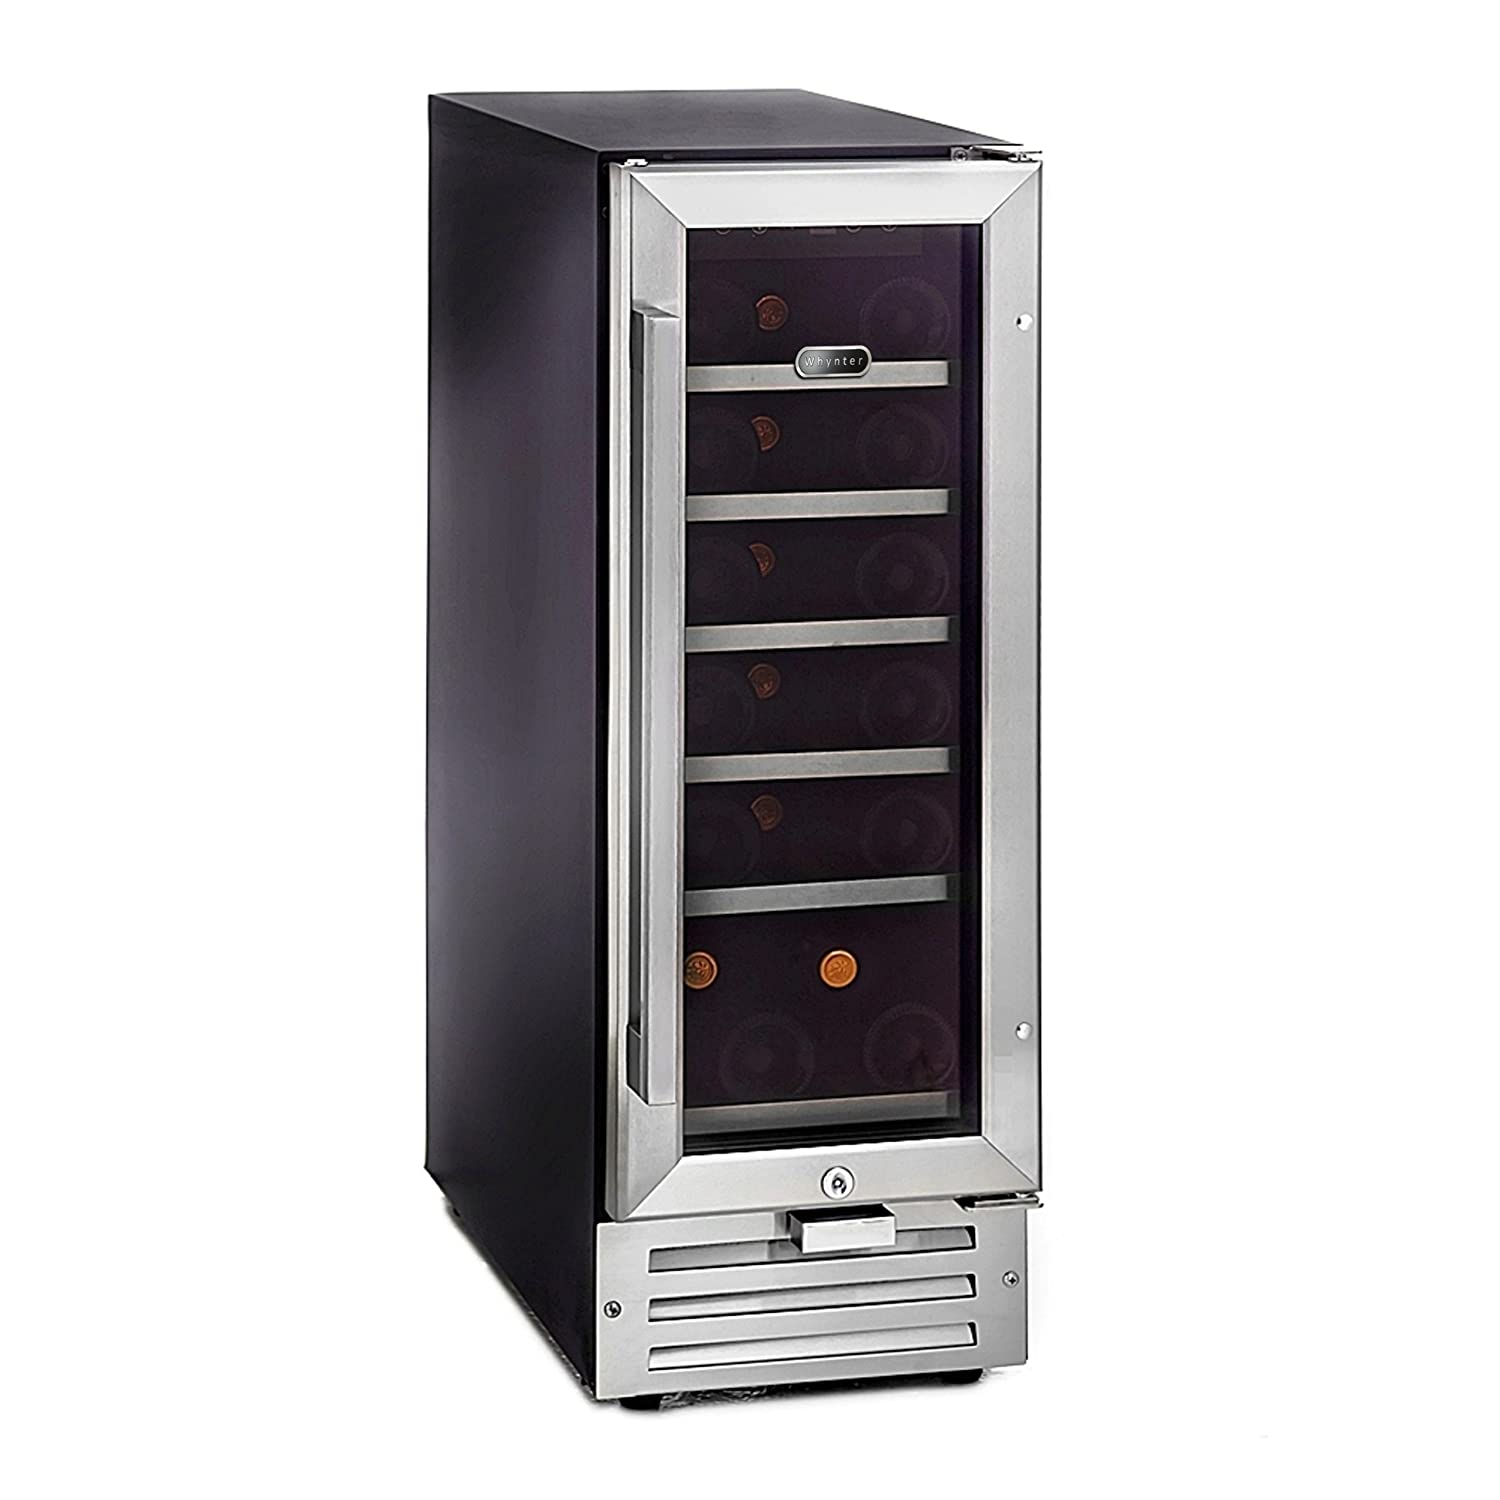 Integrated Wine Cabinet Amazoncom Whynter Bwr 18sd 18 Bottle Built In Wine Refrigerator